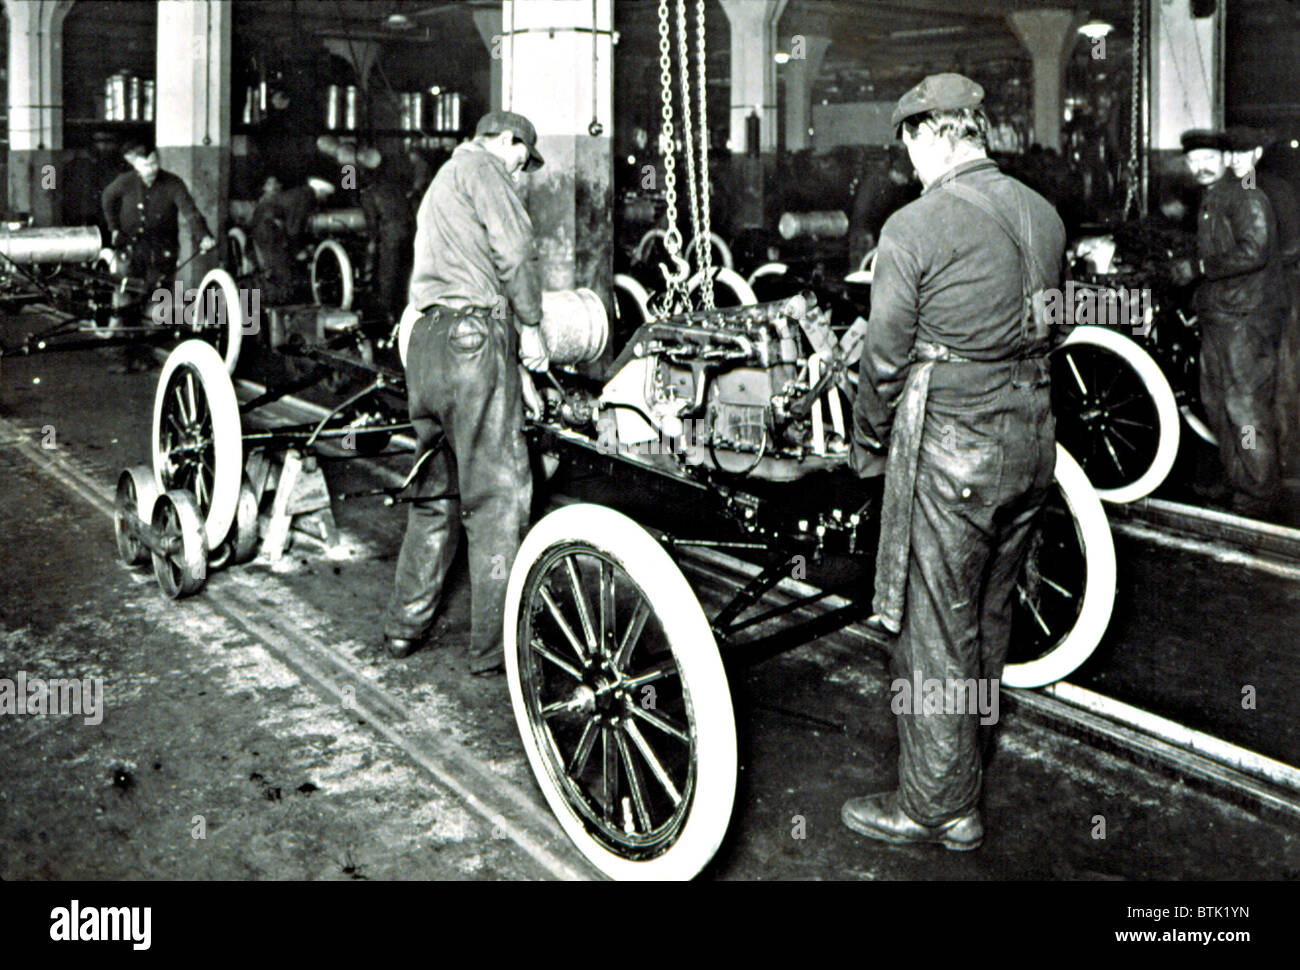 Ford motor company in the early 1900s showing the assembly line